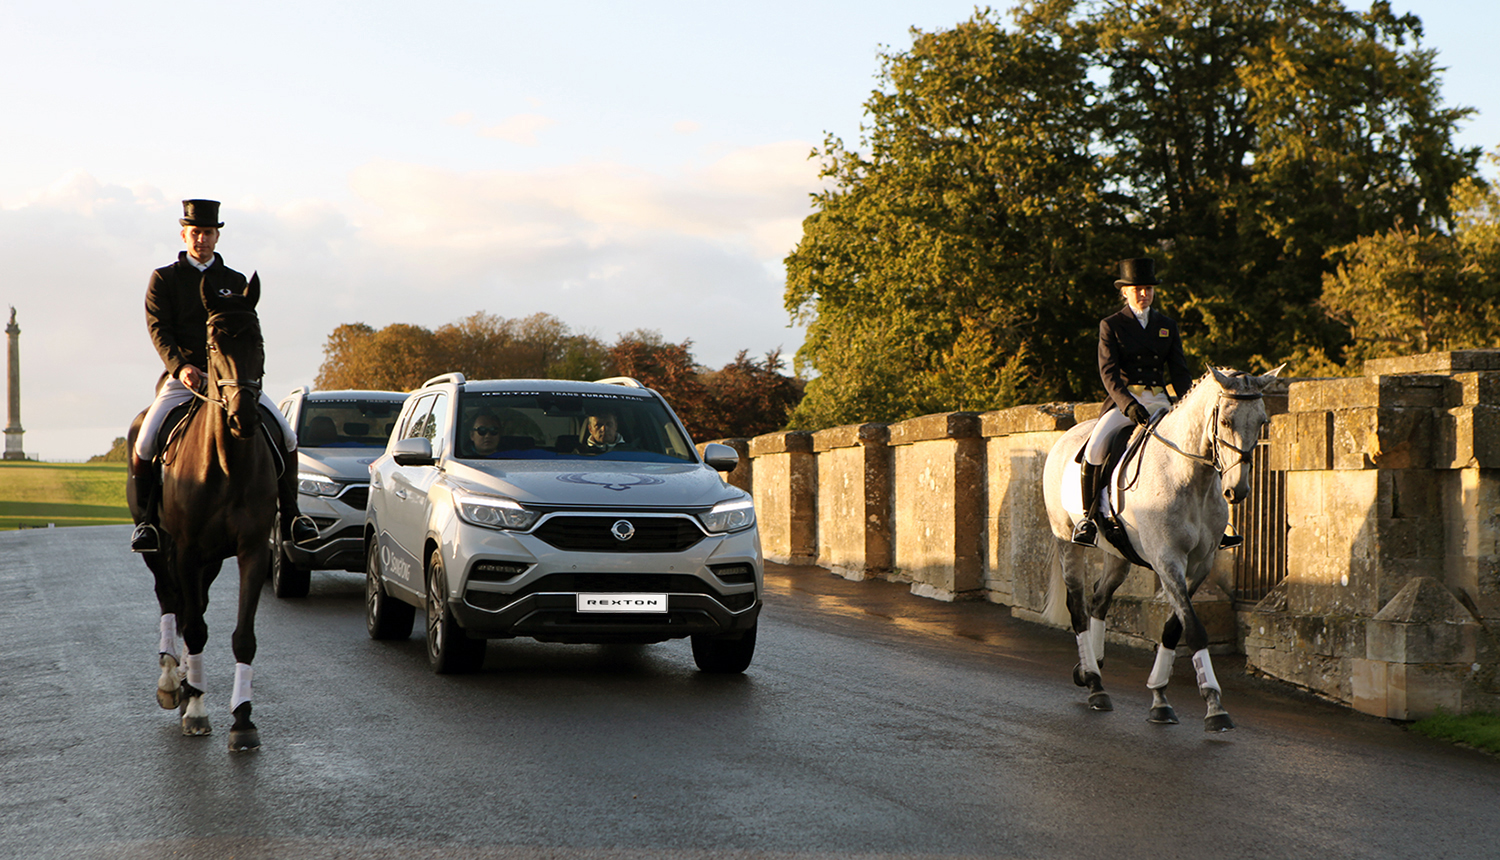 SsangYong G4 Rexton has been selected as the 4WD Car of the Year in Britain by the 4X4 magazine.